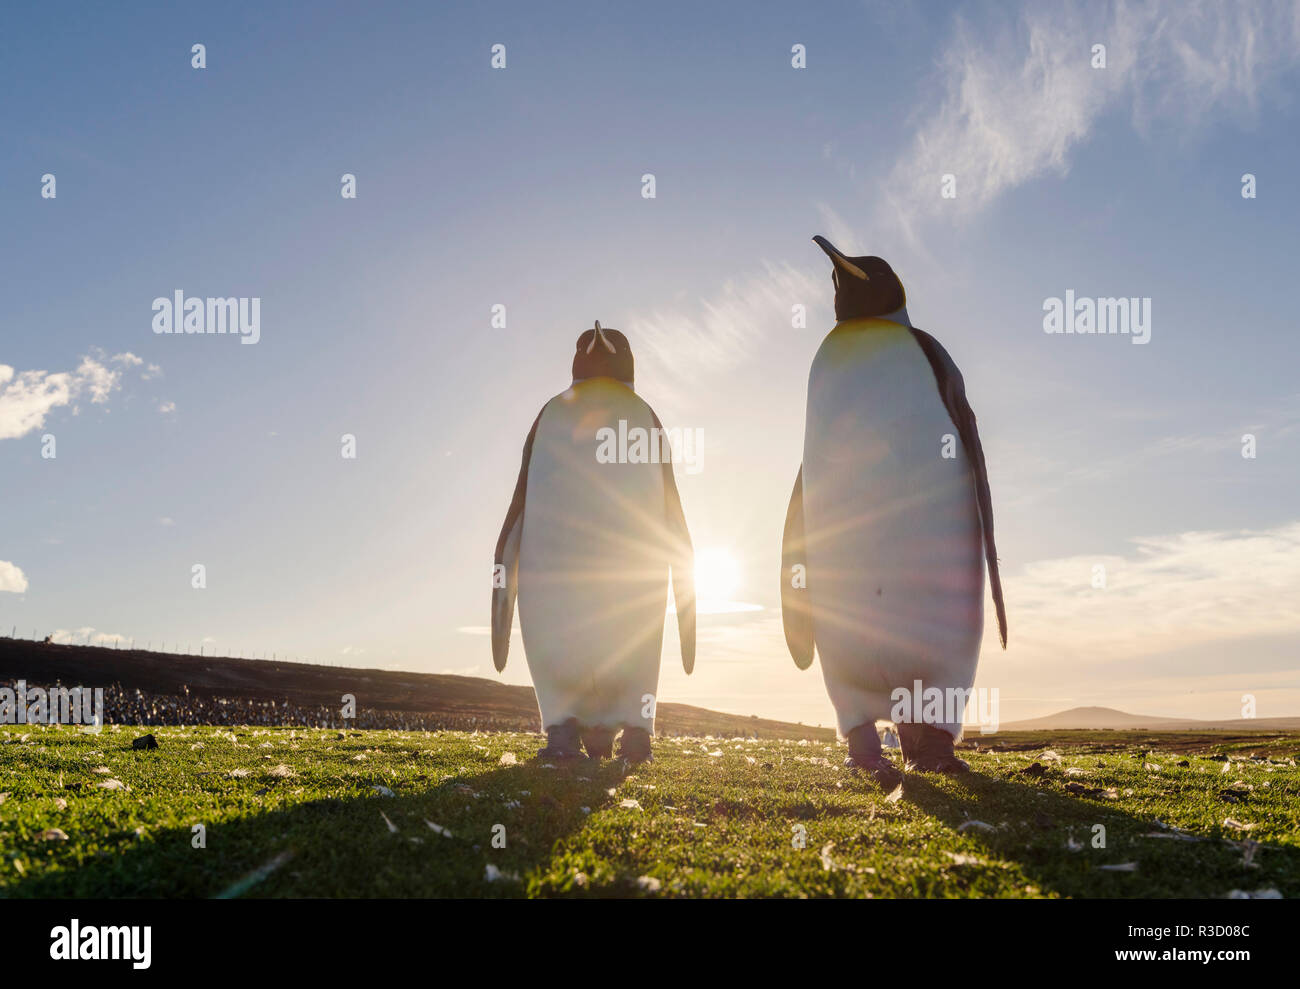 King Penguin (Aptenodytes patagonicus) on the Falkland Islands in the South Atlantic. Courtship display. Stock Photo